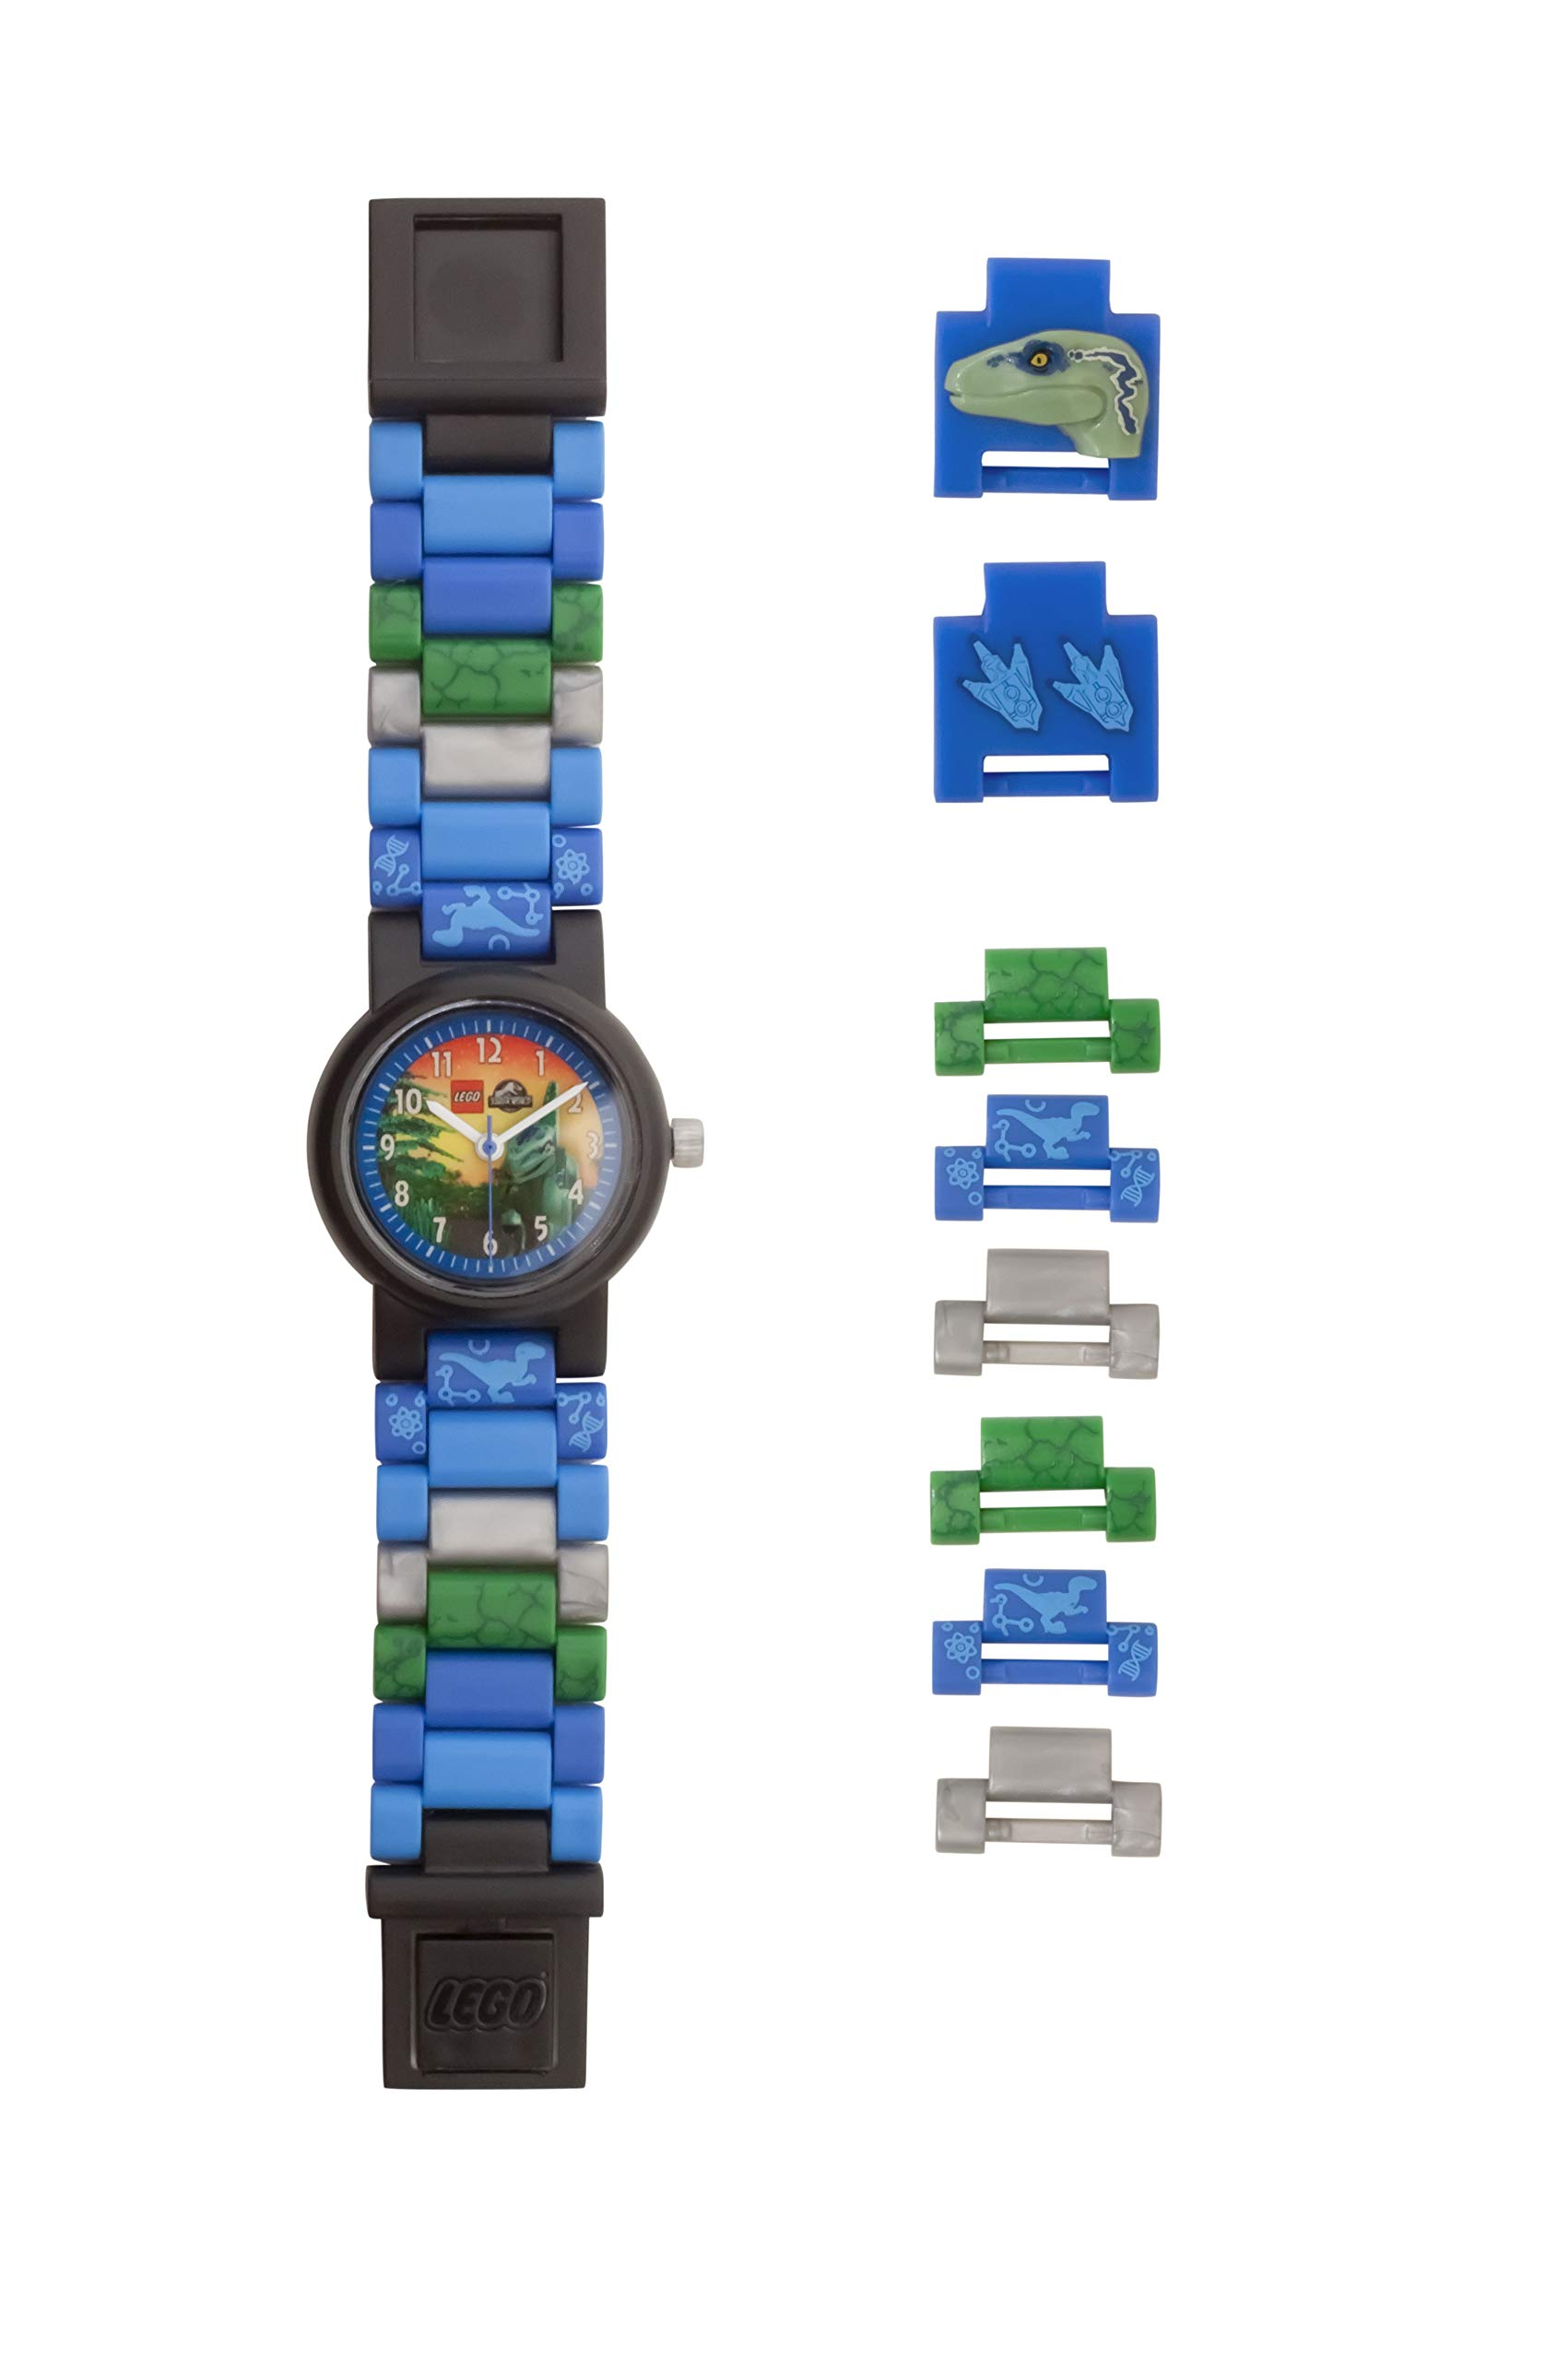 Lego Jurassic World 8021285 Blue Kids Buildable Watch with Minifigure Link| Blue/Black | Plastic | 25mm case Diameter| Analog Quartz | boy Girl | Official by ClicTime